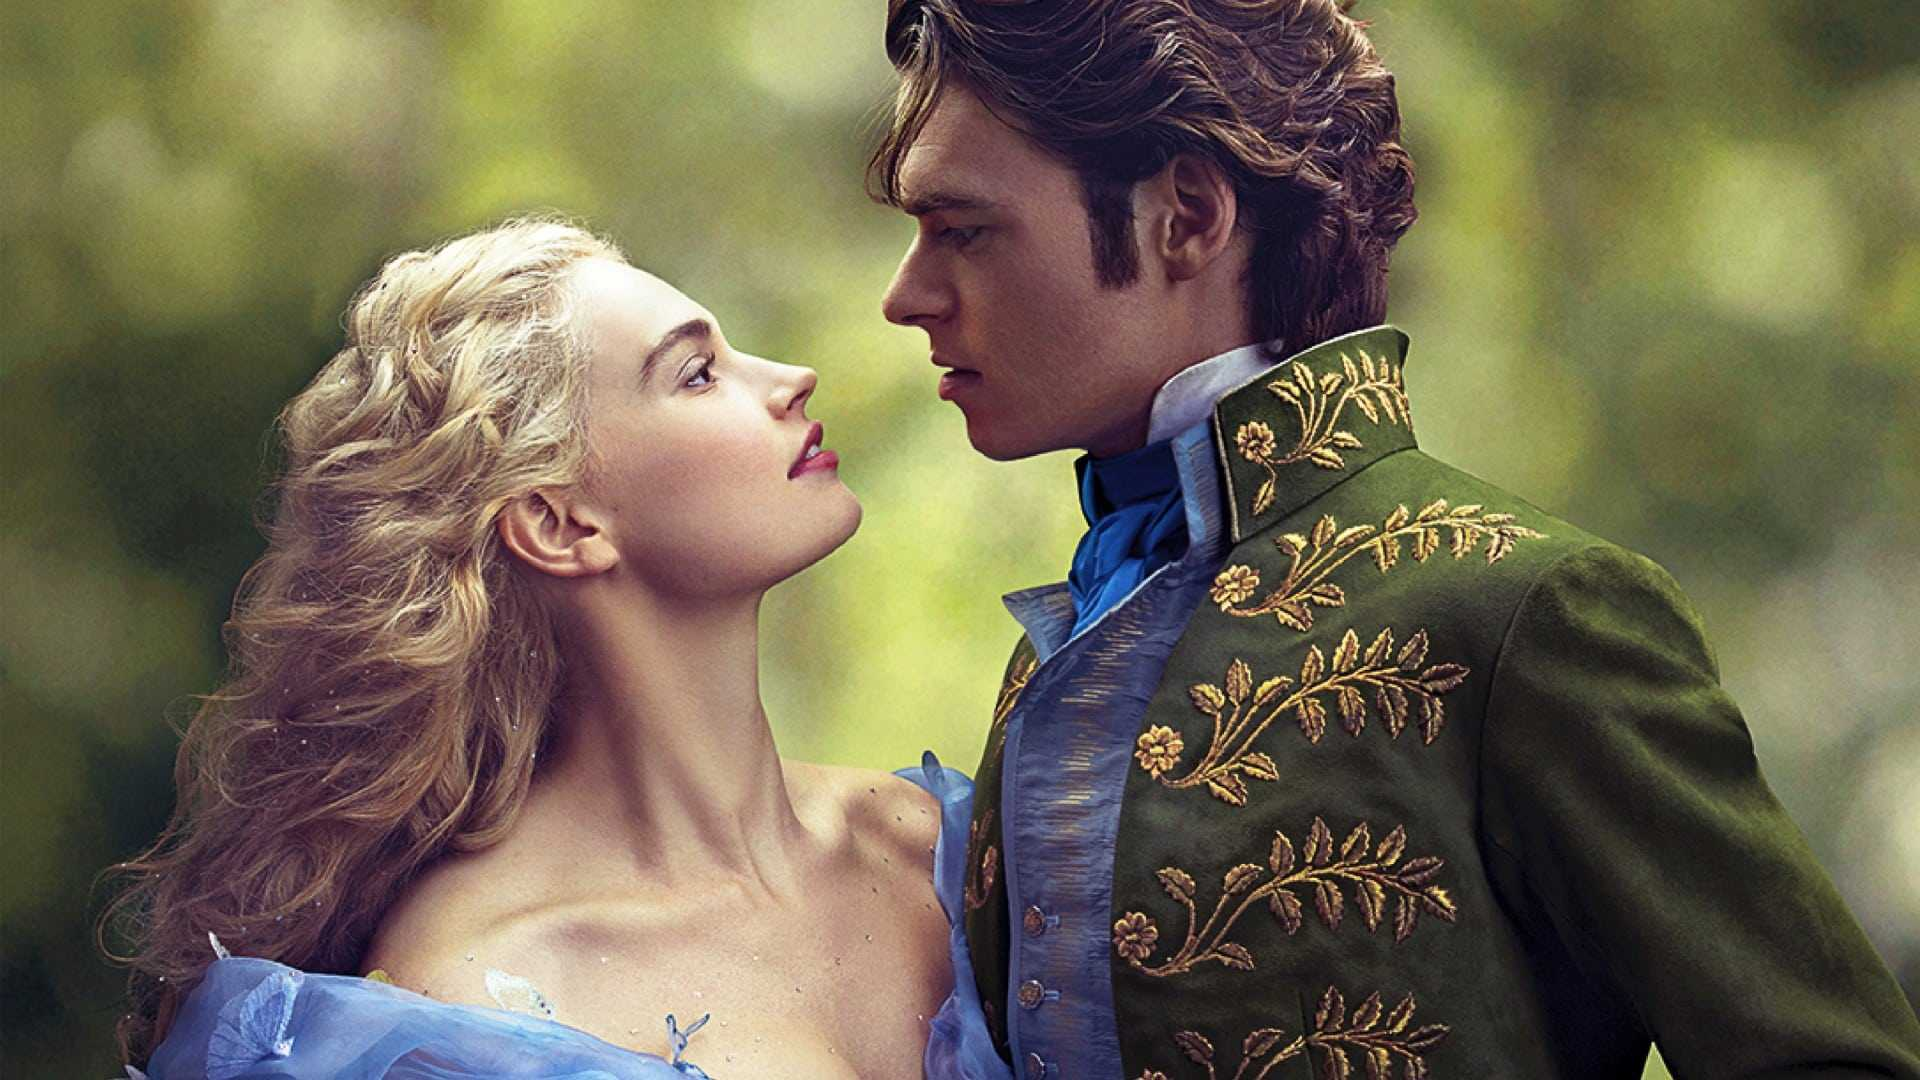 A still from 'Cinderella' 2015 of Cinderella and the prince looking at each other